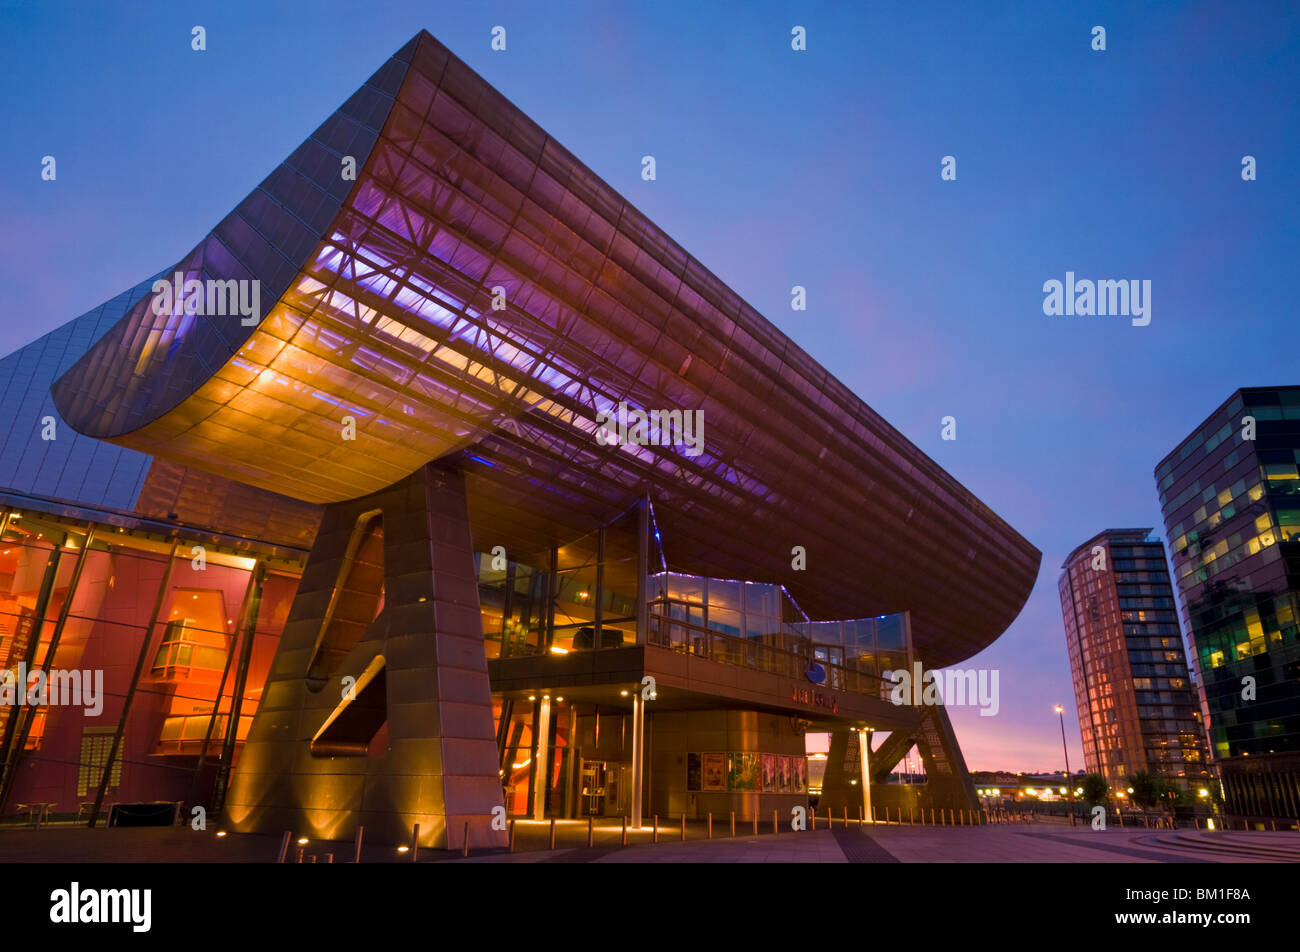 The Lowry Centre illuminated in the early evening, Salford Quays, Greater Manchester, England, United Kingdom, Europe - Stock Image